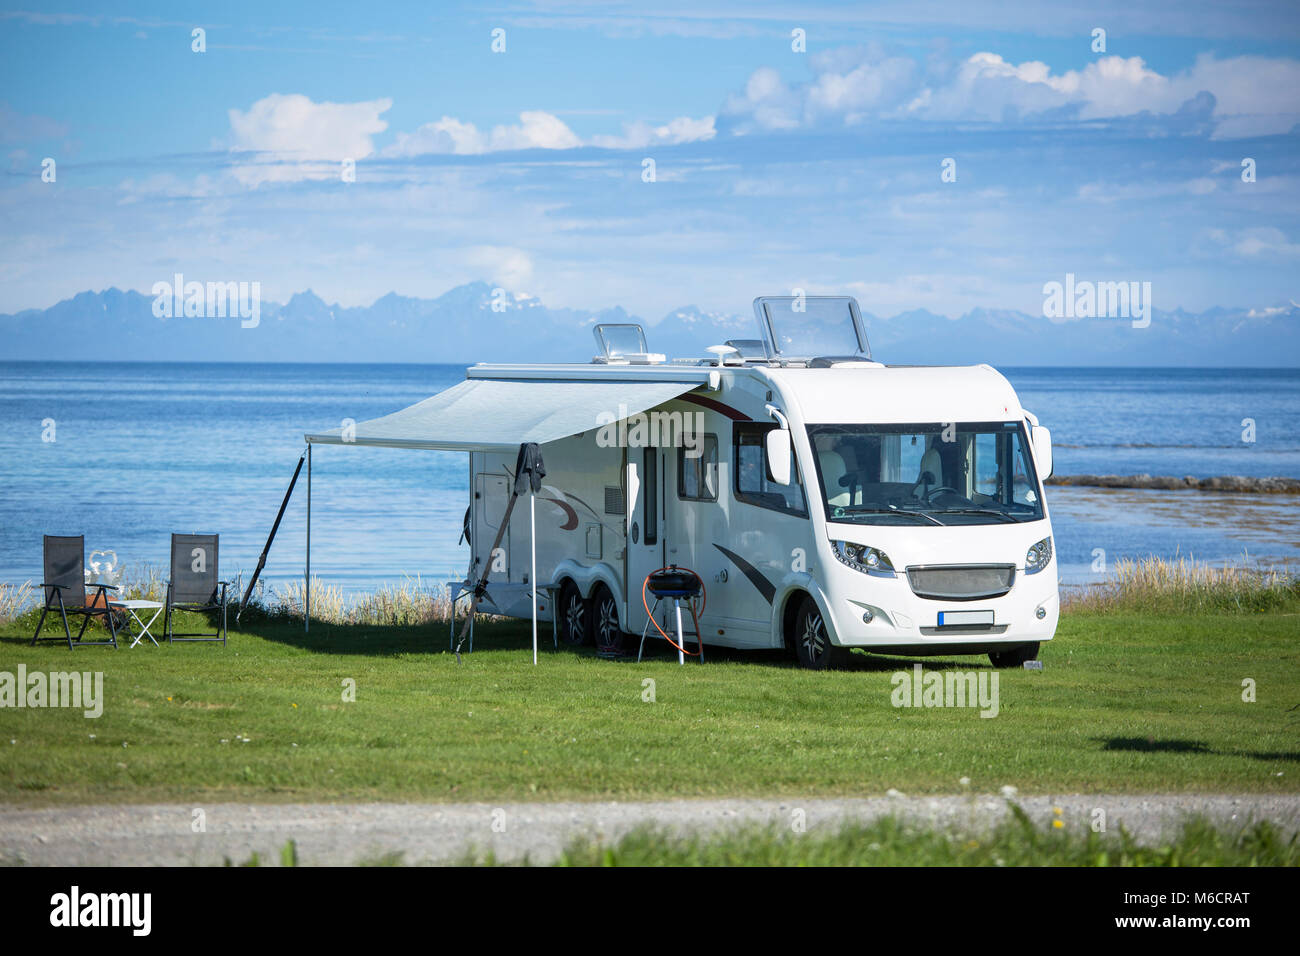 Motorhome parking nearby the water at Engeloya, Norway. The wall of Lofoten Oslands is rising in the horizon. - Stock Image